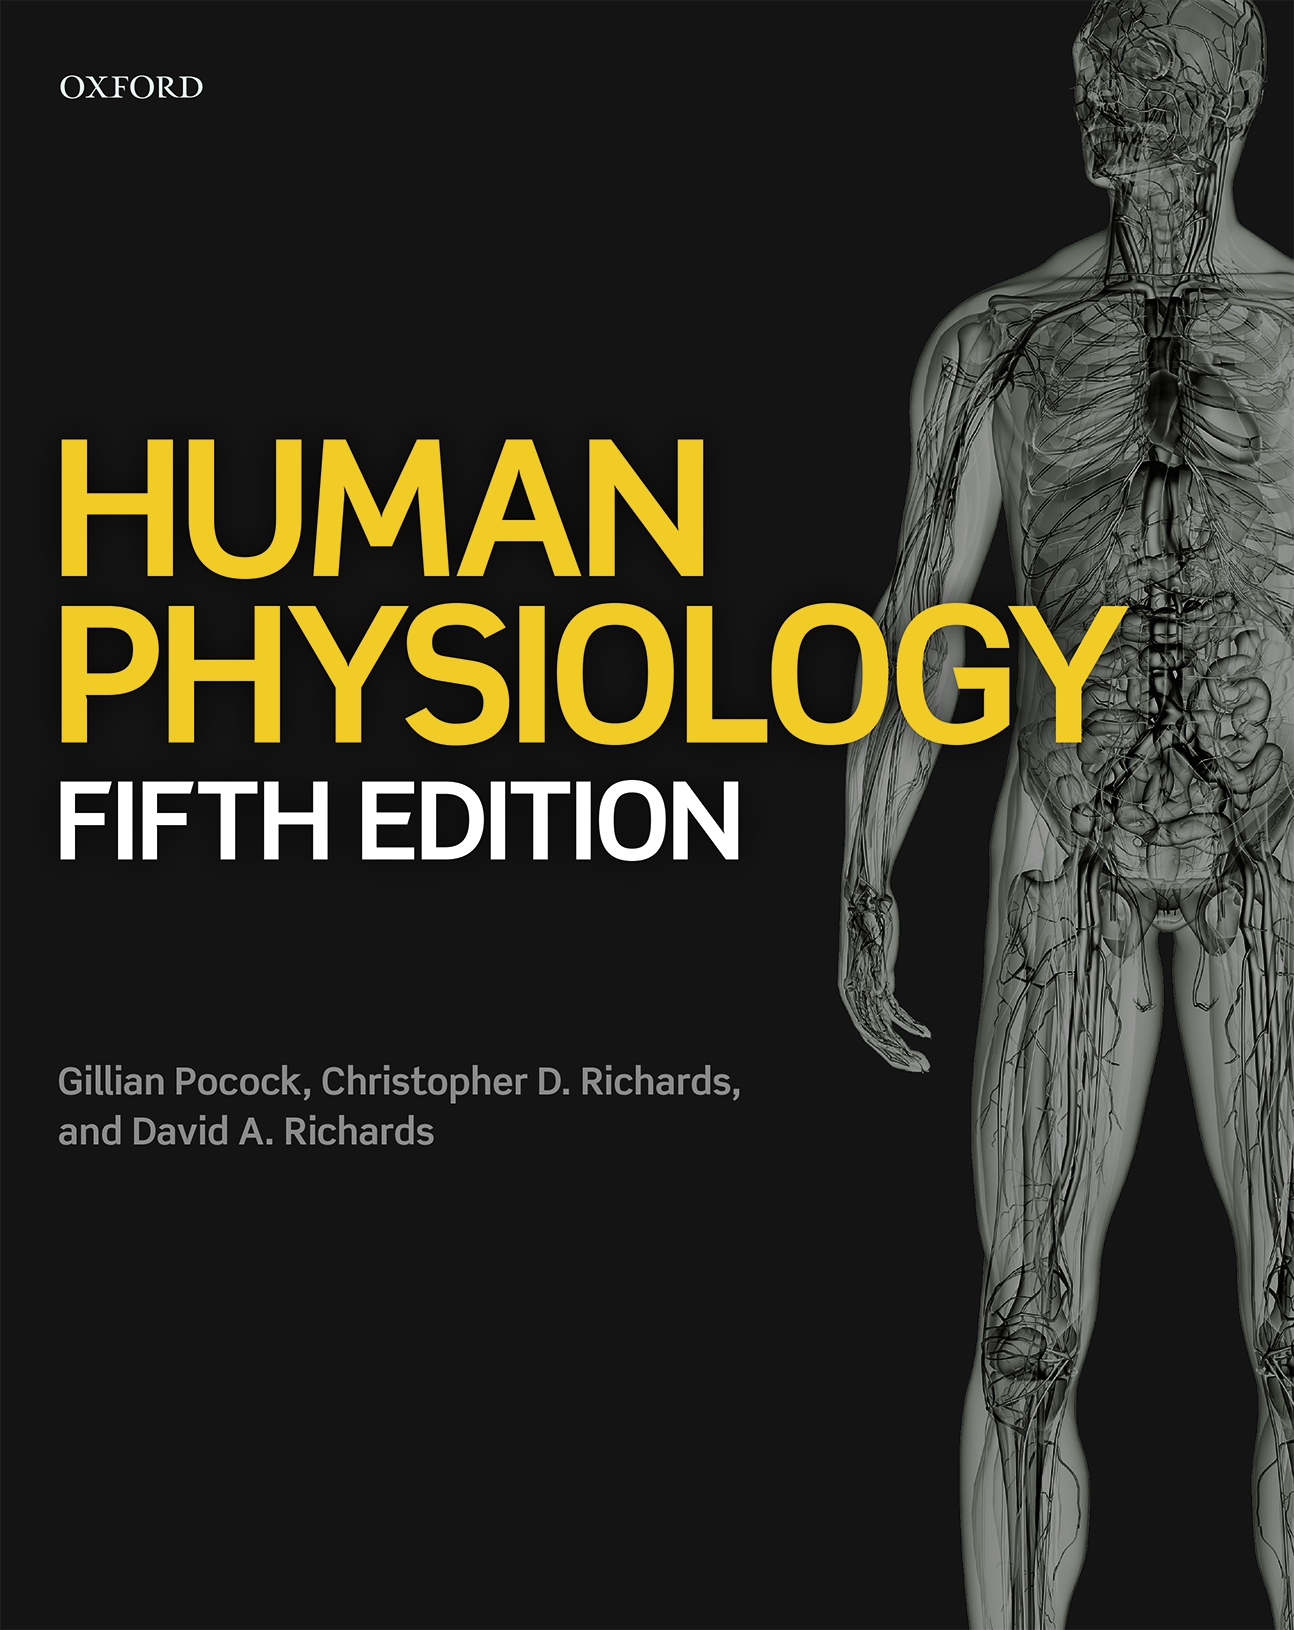 Human Physiology 5e - student resources